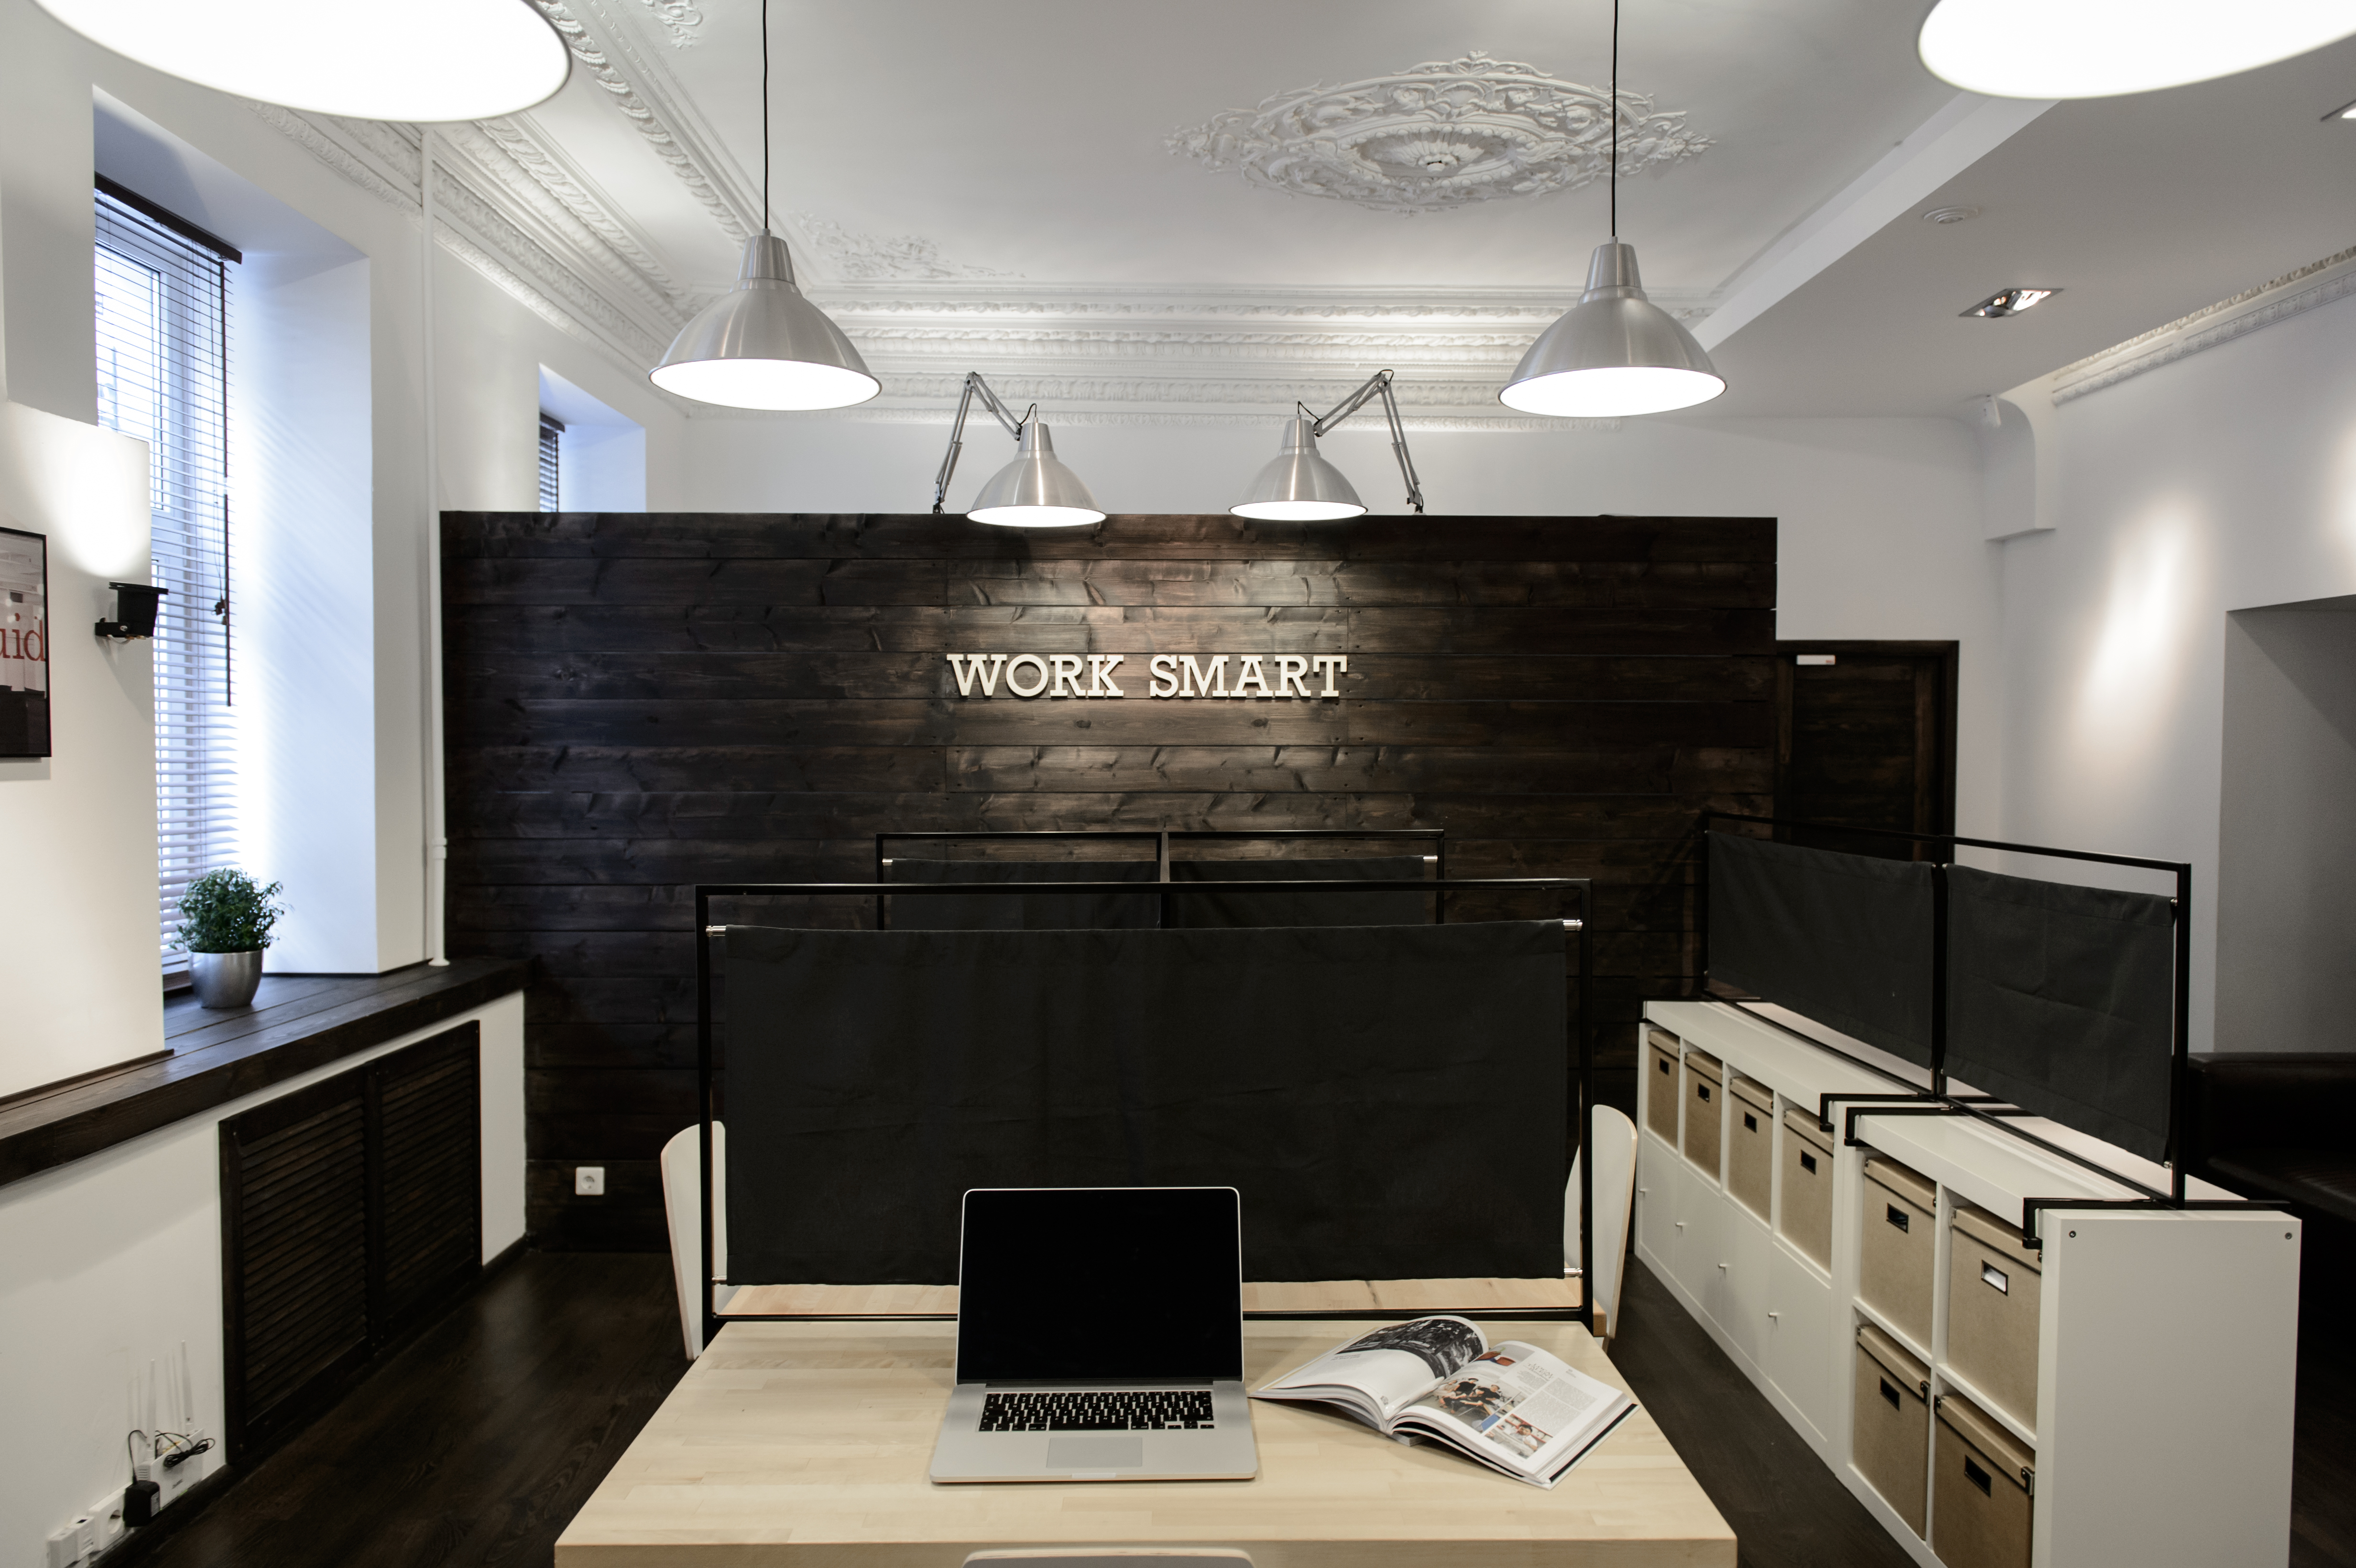 Work Smart Coworking Space Architect Magazine Epc Sht